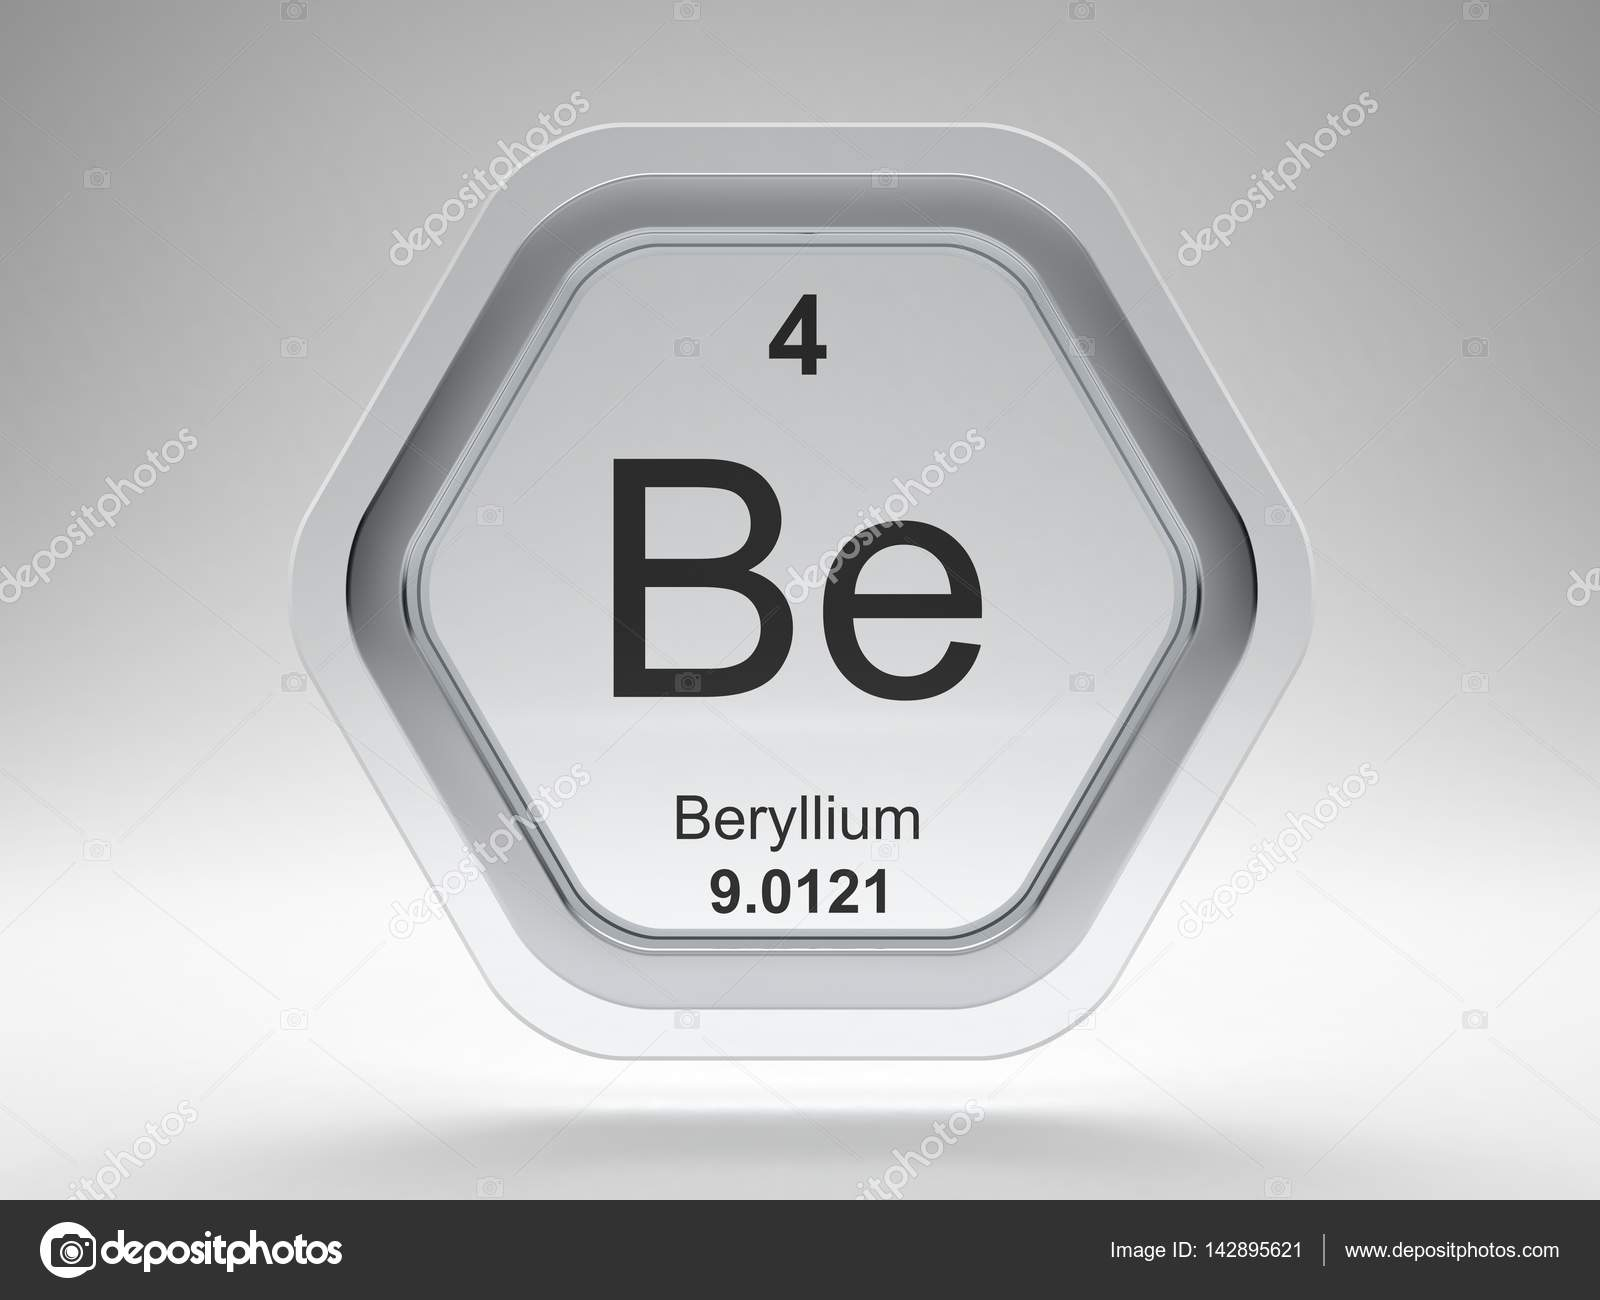 Beryllium element symbol stock photo conceptw 142895621 beryllium symbol on modern glass and steel icon photo by conceptw buycottarizona Image collections